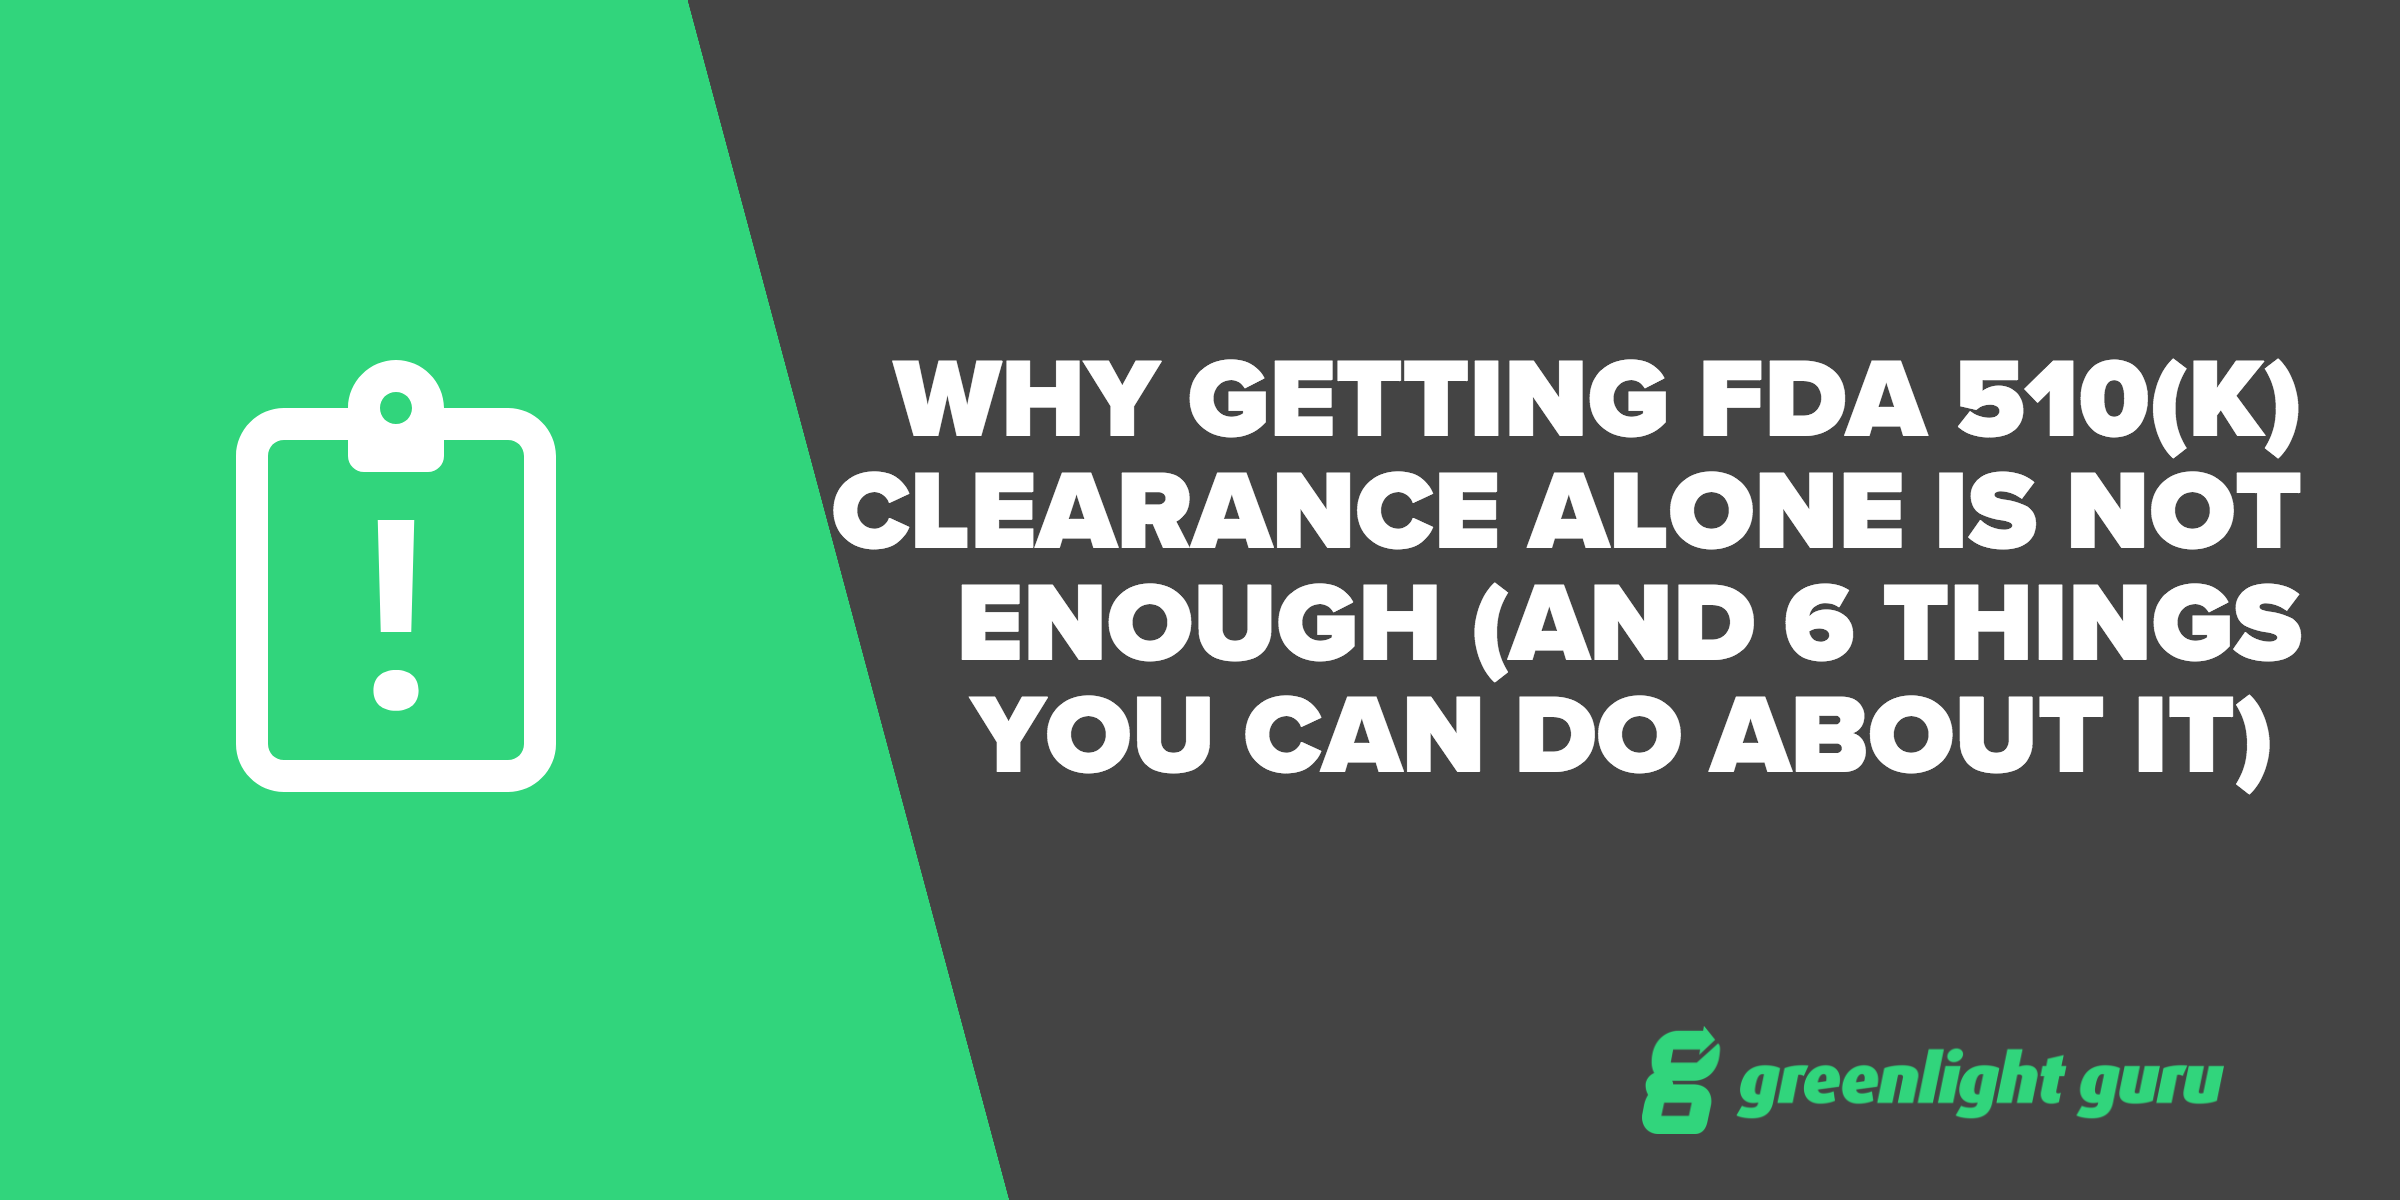 Why Getting FDA 510(k) Clearance Alone is Not Enough (And 6 Things You Can Do About It) - Featured Image